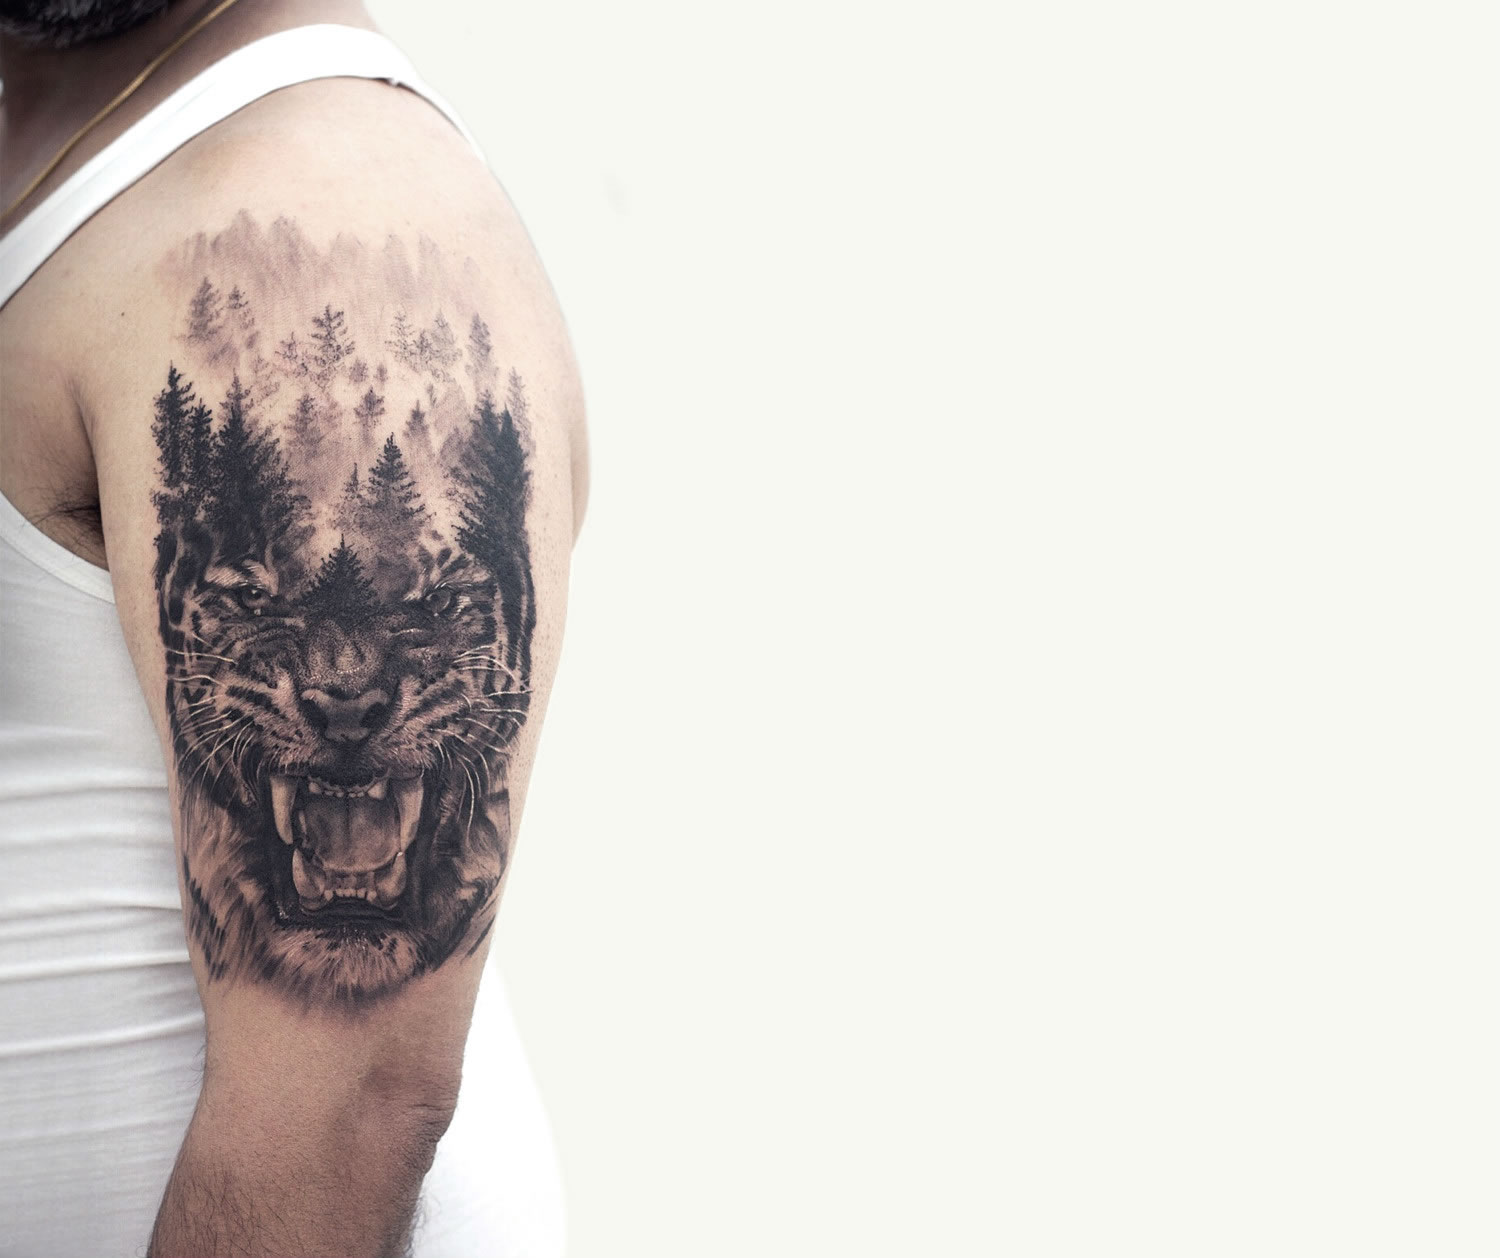 Sunny Bhanushali double exposure tattoo